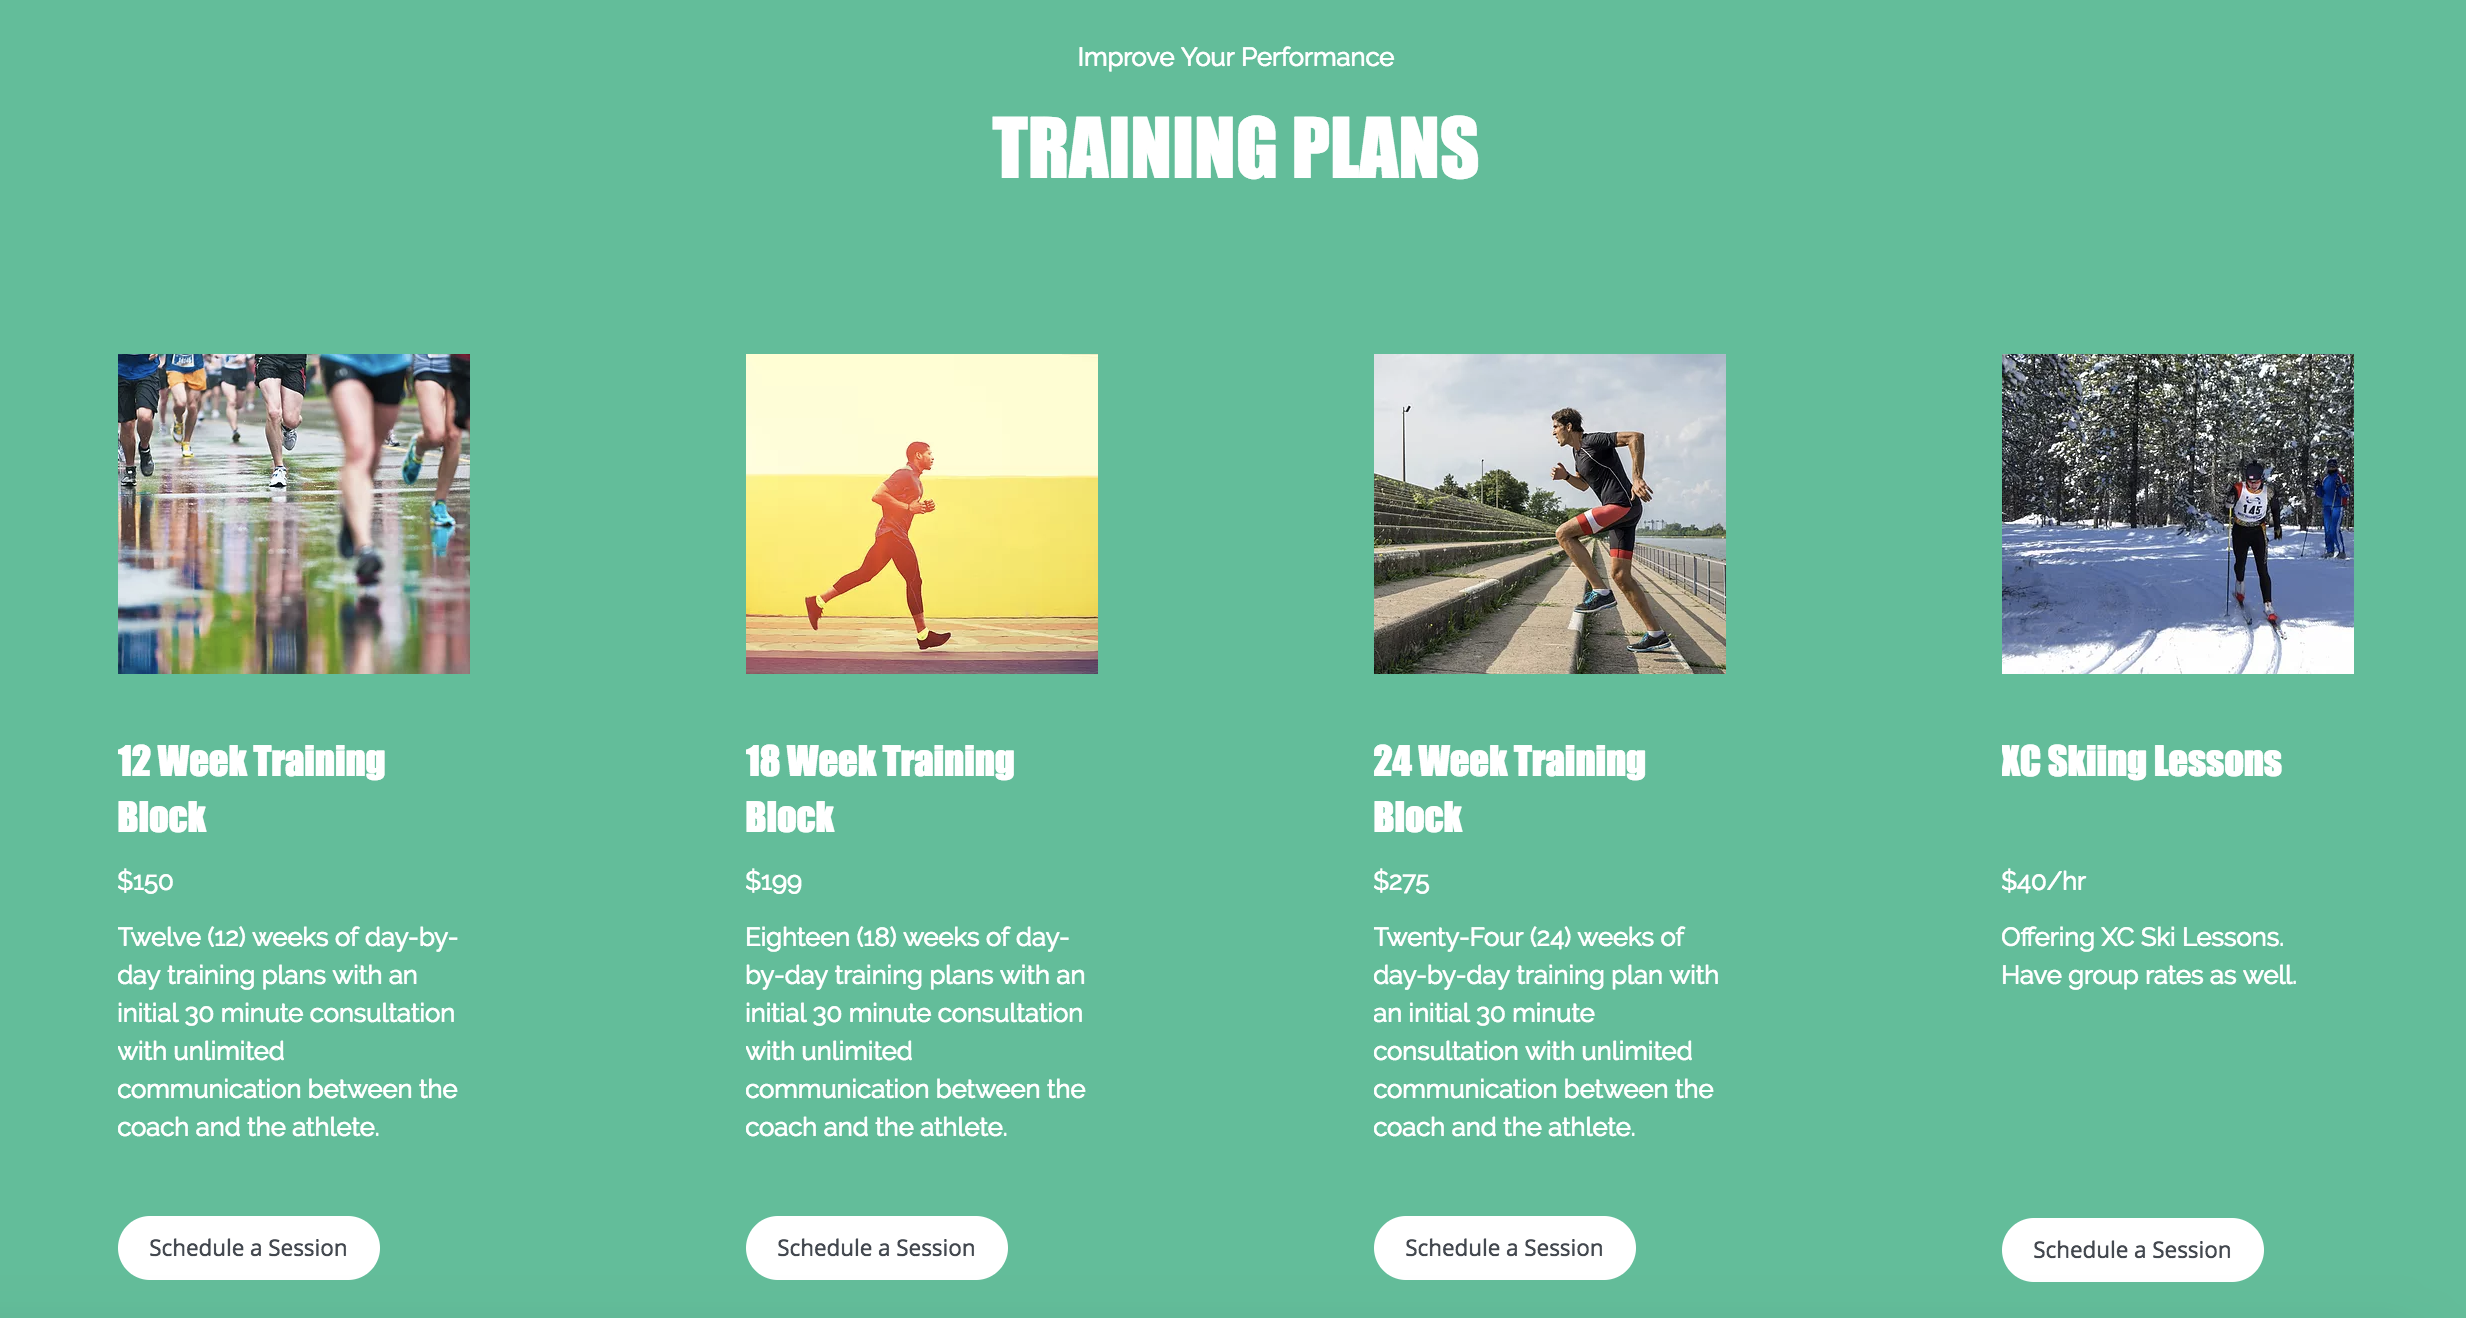 trainingplans.png